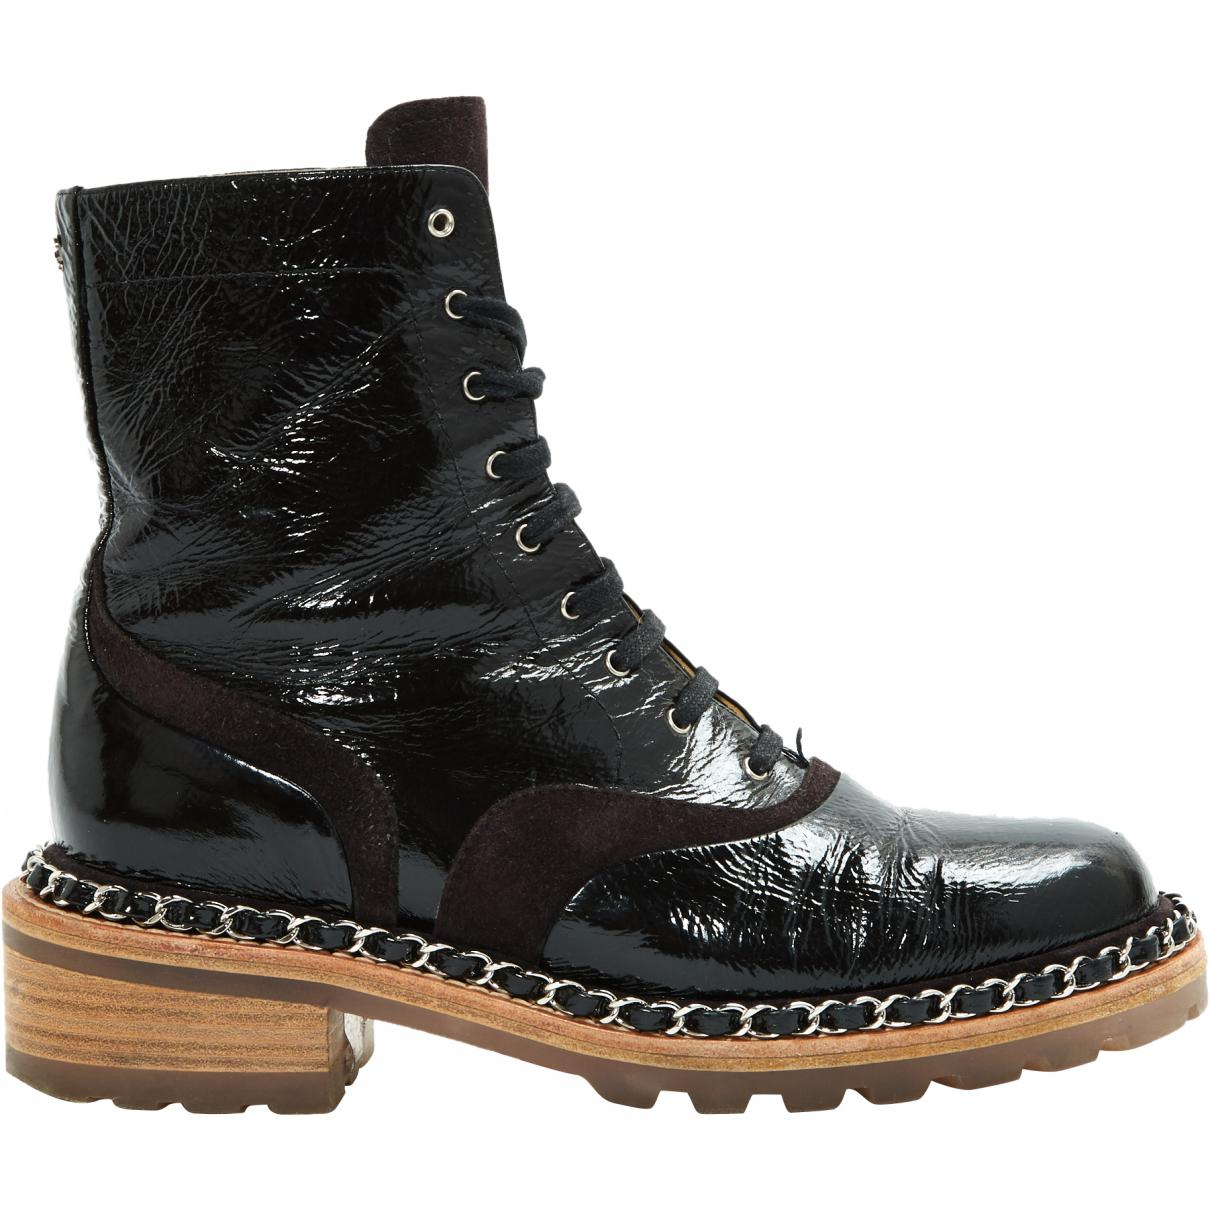 Chanel Patent & Suede Chain Trim Boots